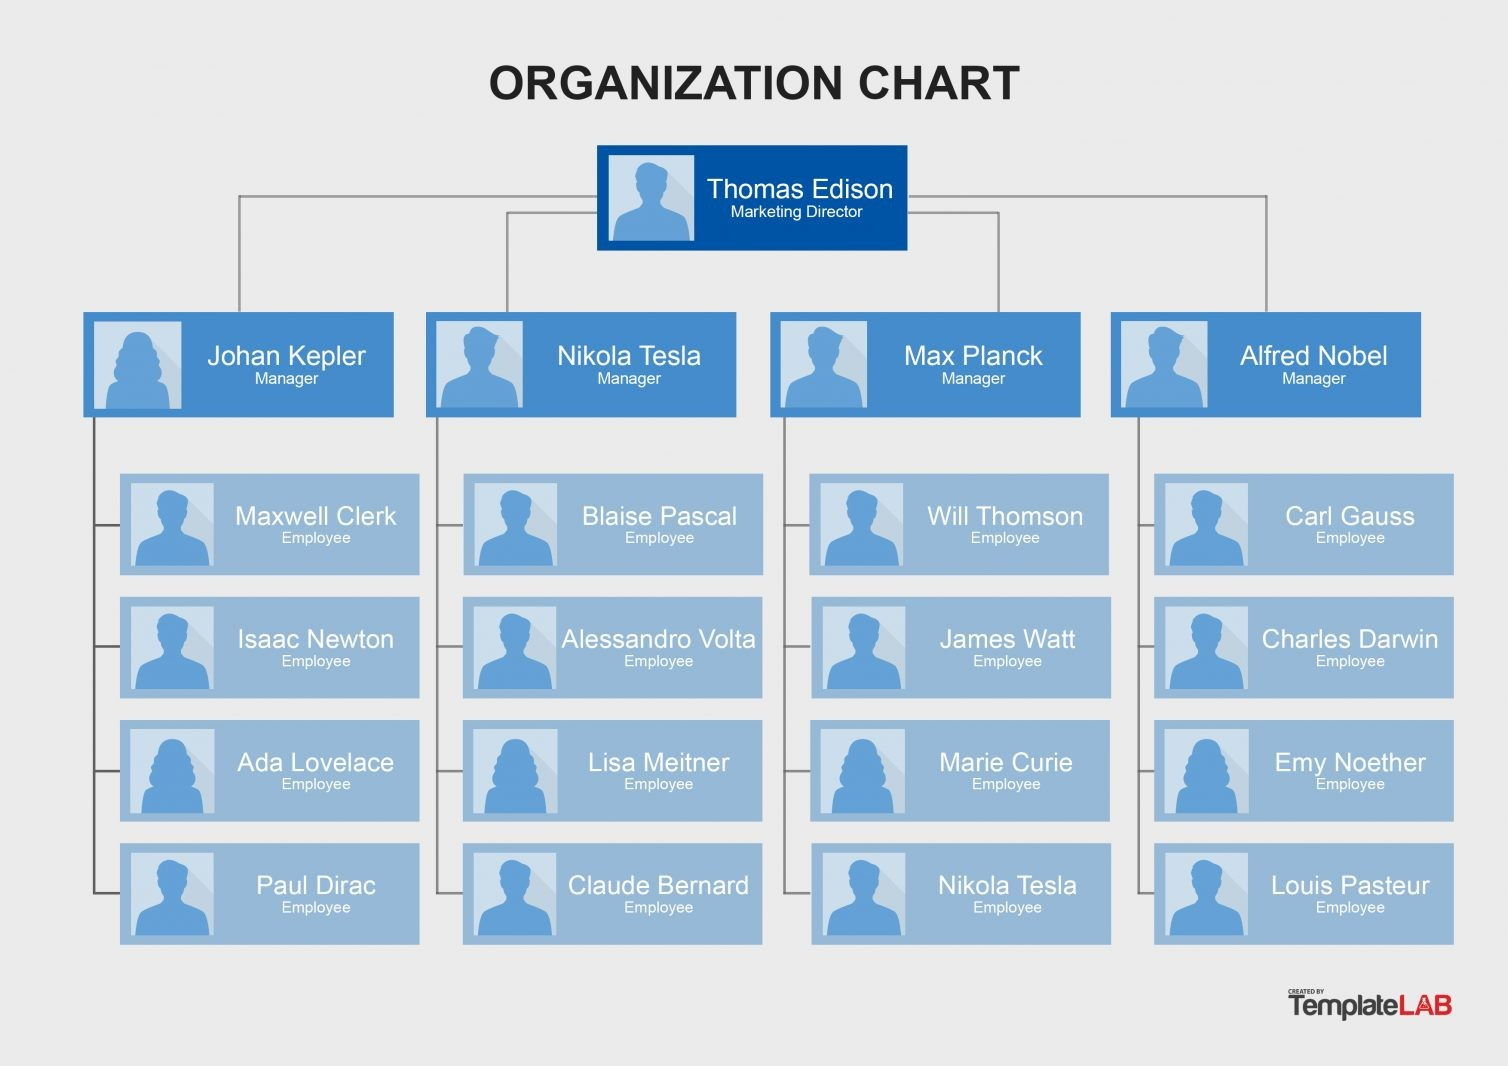 21/02/2021· organizational chart (basic layout) read the included instructions and edit this slide template to create a basic organizational chart that is viewable at a glance. 32 Organizational Chart Templates Word Excel Powerpoint Psd